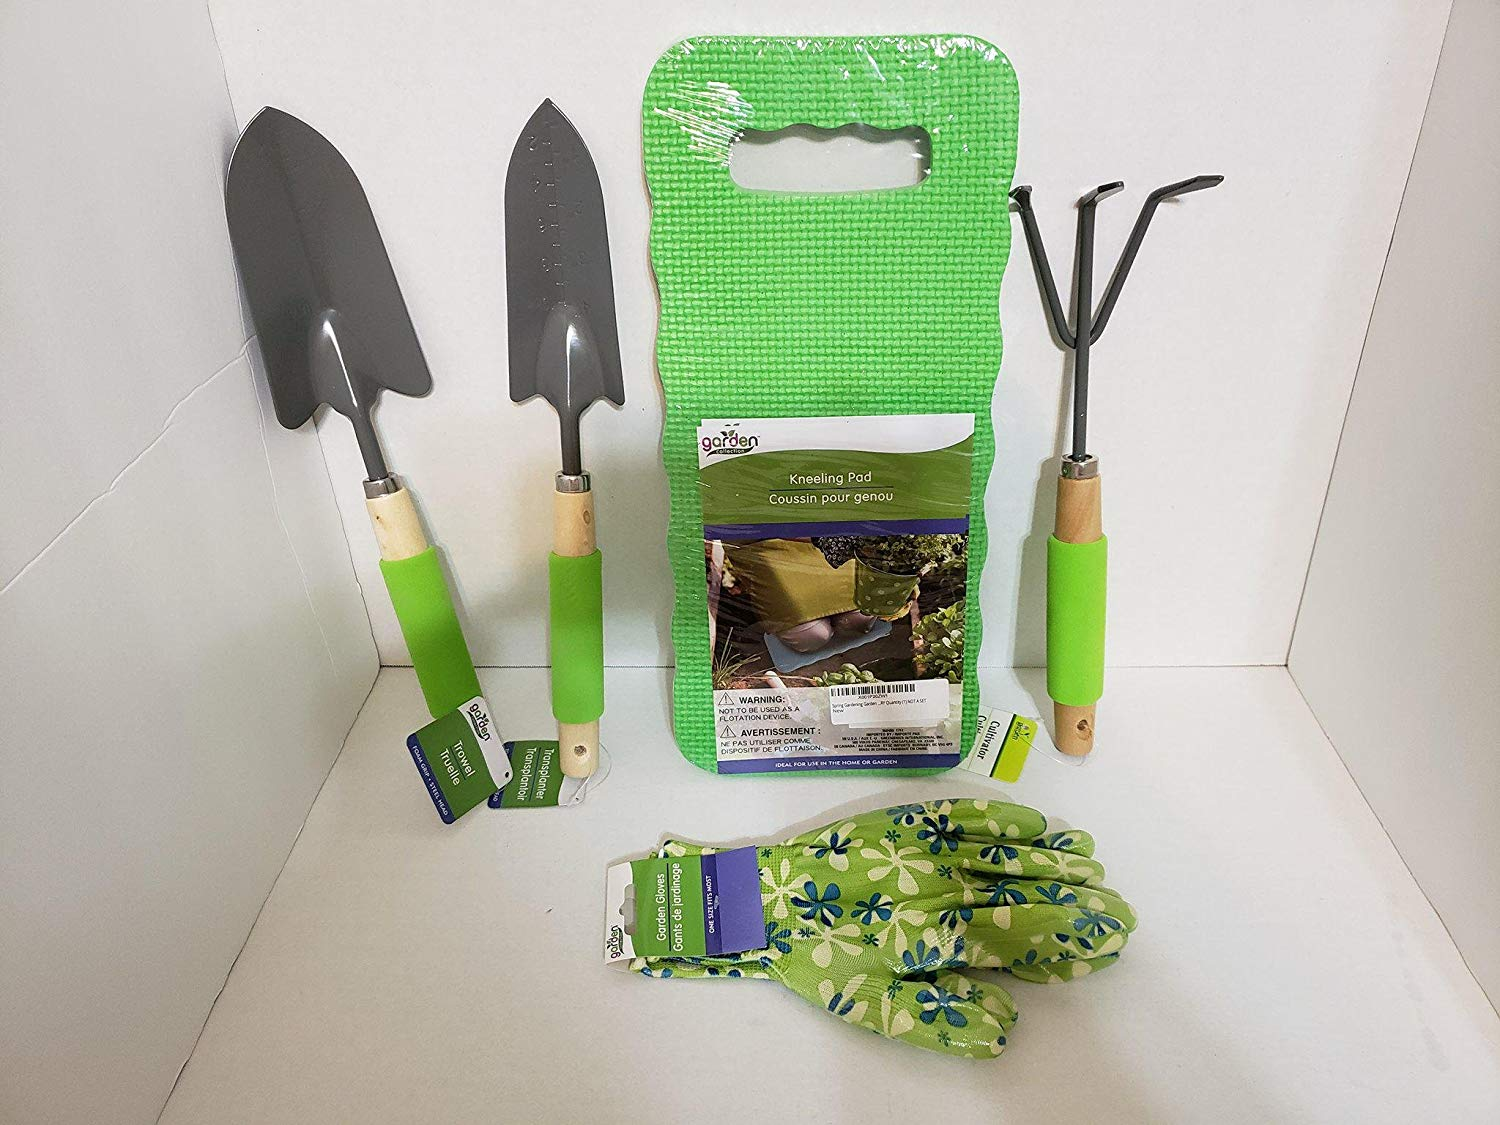 JGT Garden Tools Set Trowel Transplanter Cultivator Gloves Garden Kneeling Pad Weeding Digging, Transplanting, Cleaning, Soil Cultivating Set - Bundle Set of 5 (Green)